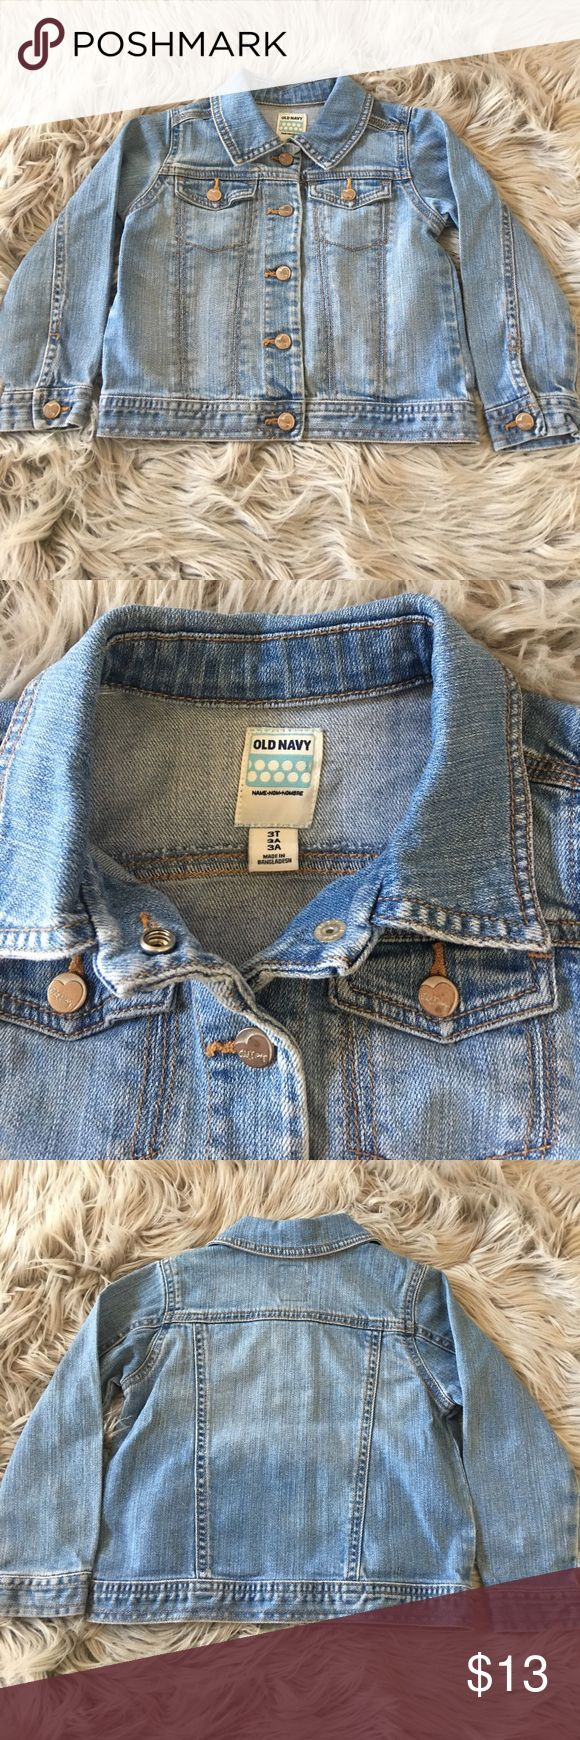 Old Navy jean jacket Light wash jean jacket. Excellent condition. Size 3T. Old Navy Jackets & Coats Jean Jackets